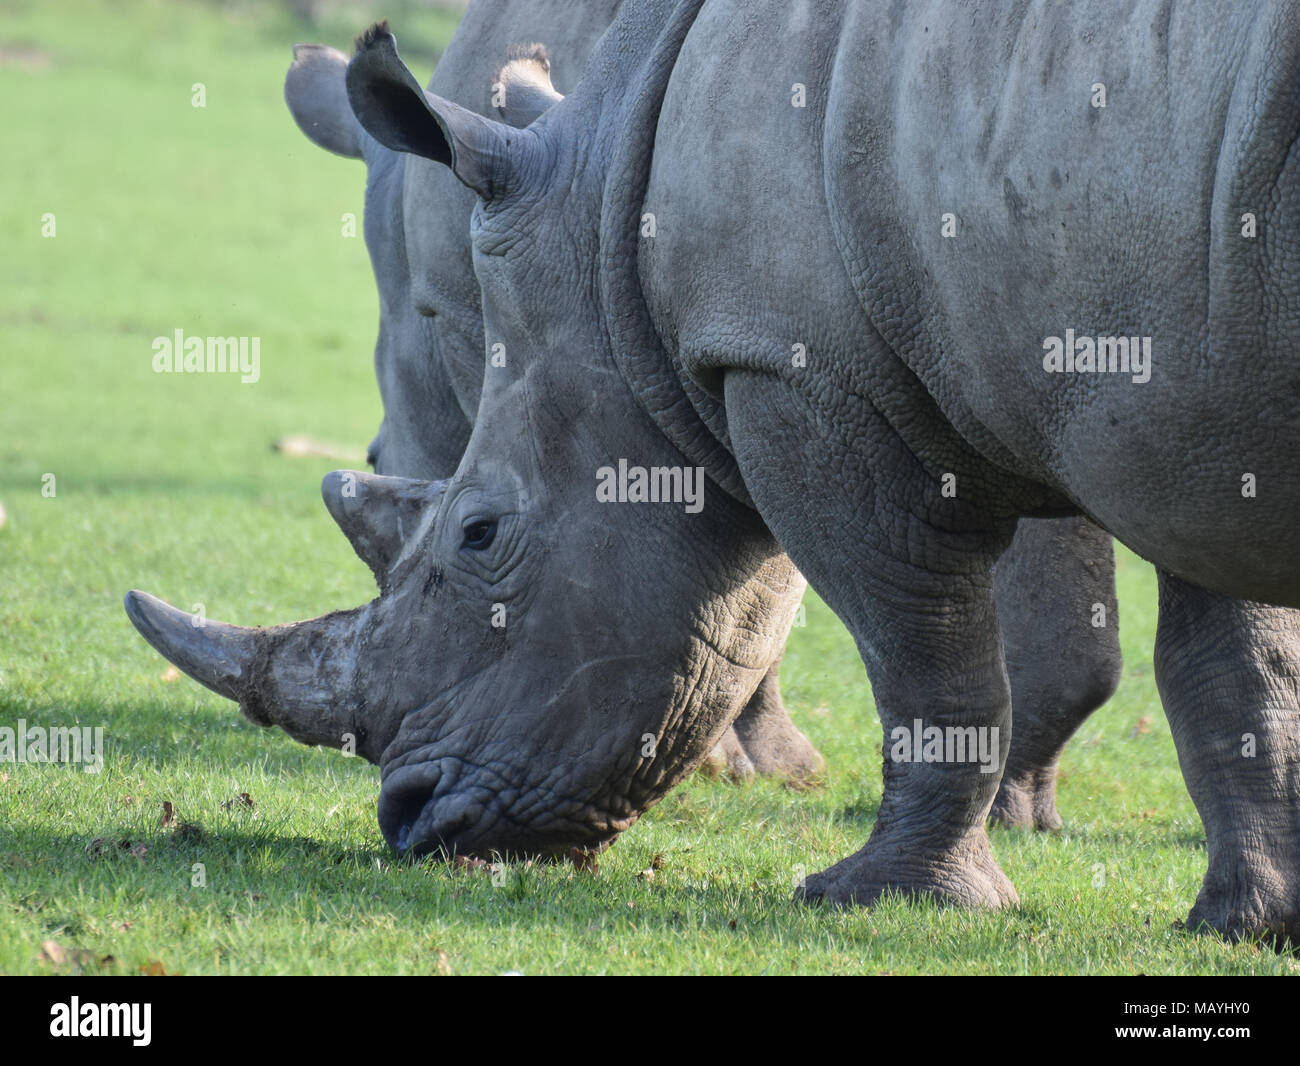 White Rhinocerous grazing on grass on a sunny day - Stock Image